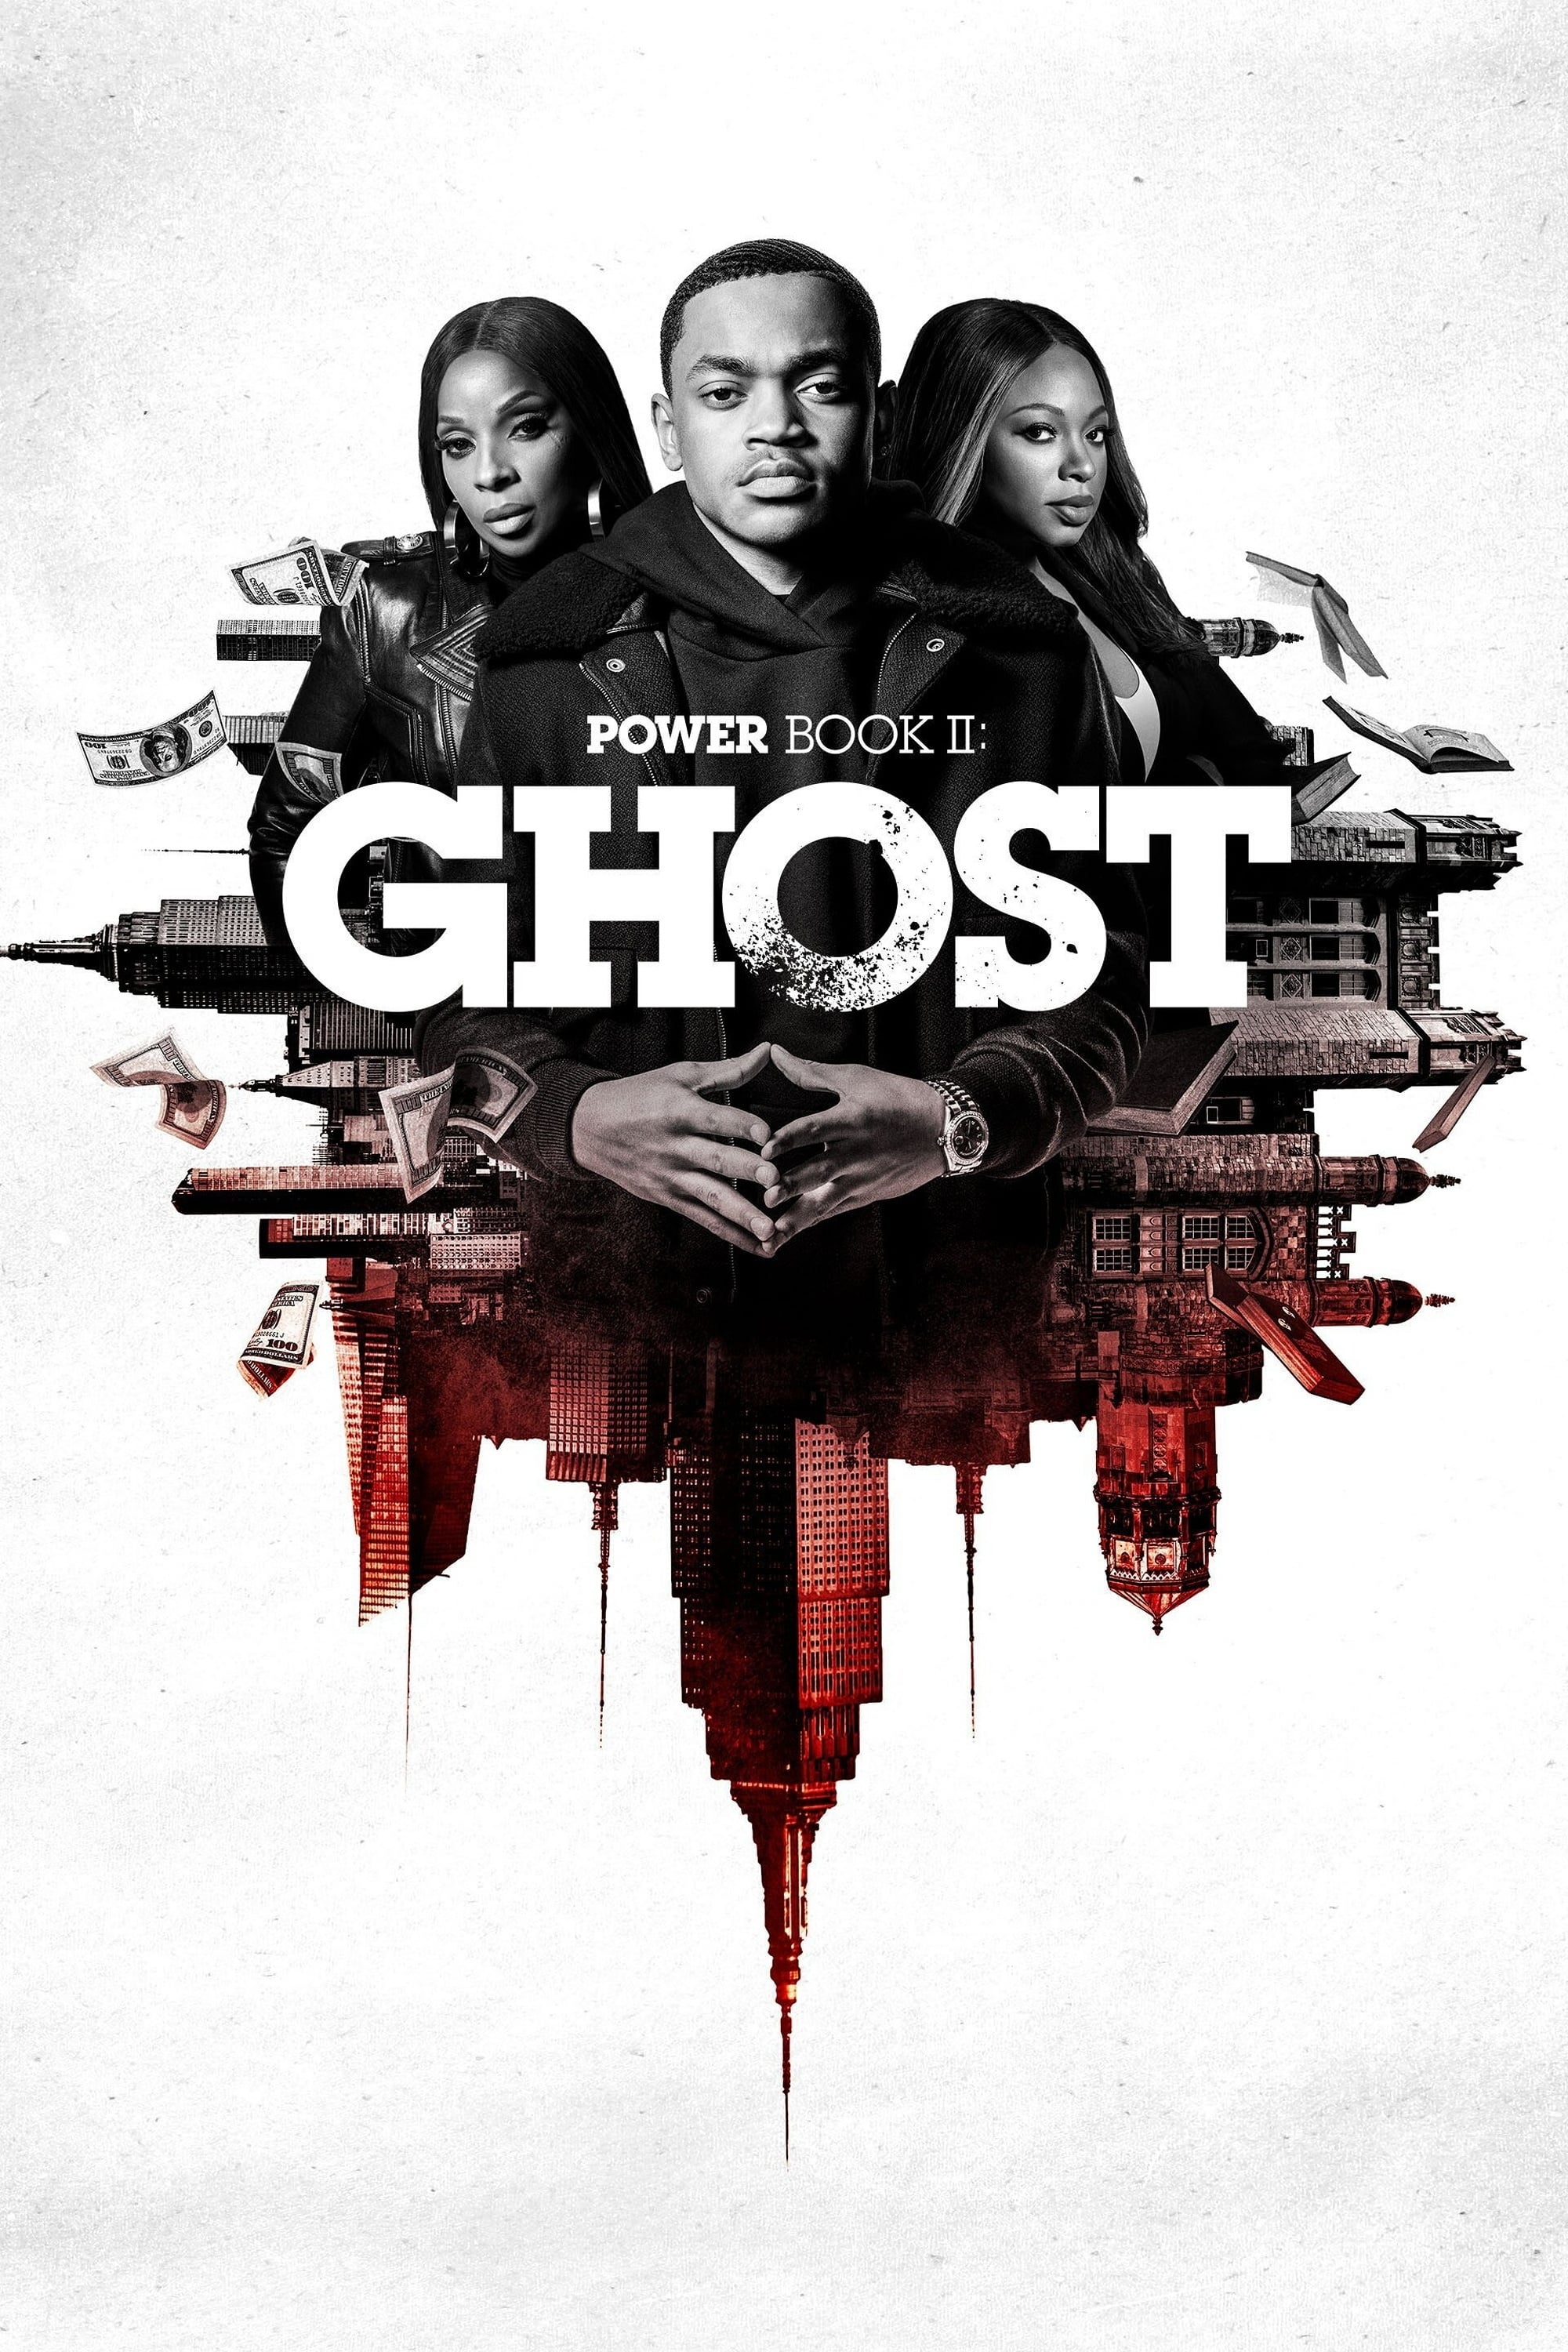 Power Book II: Ghost Season 1